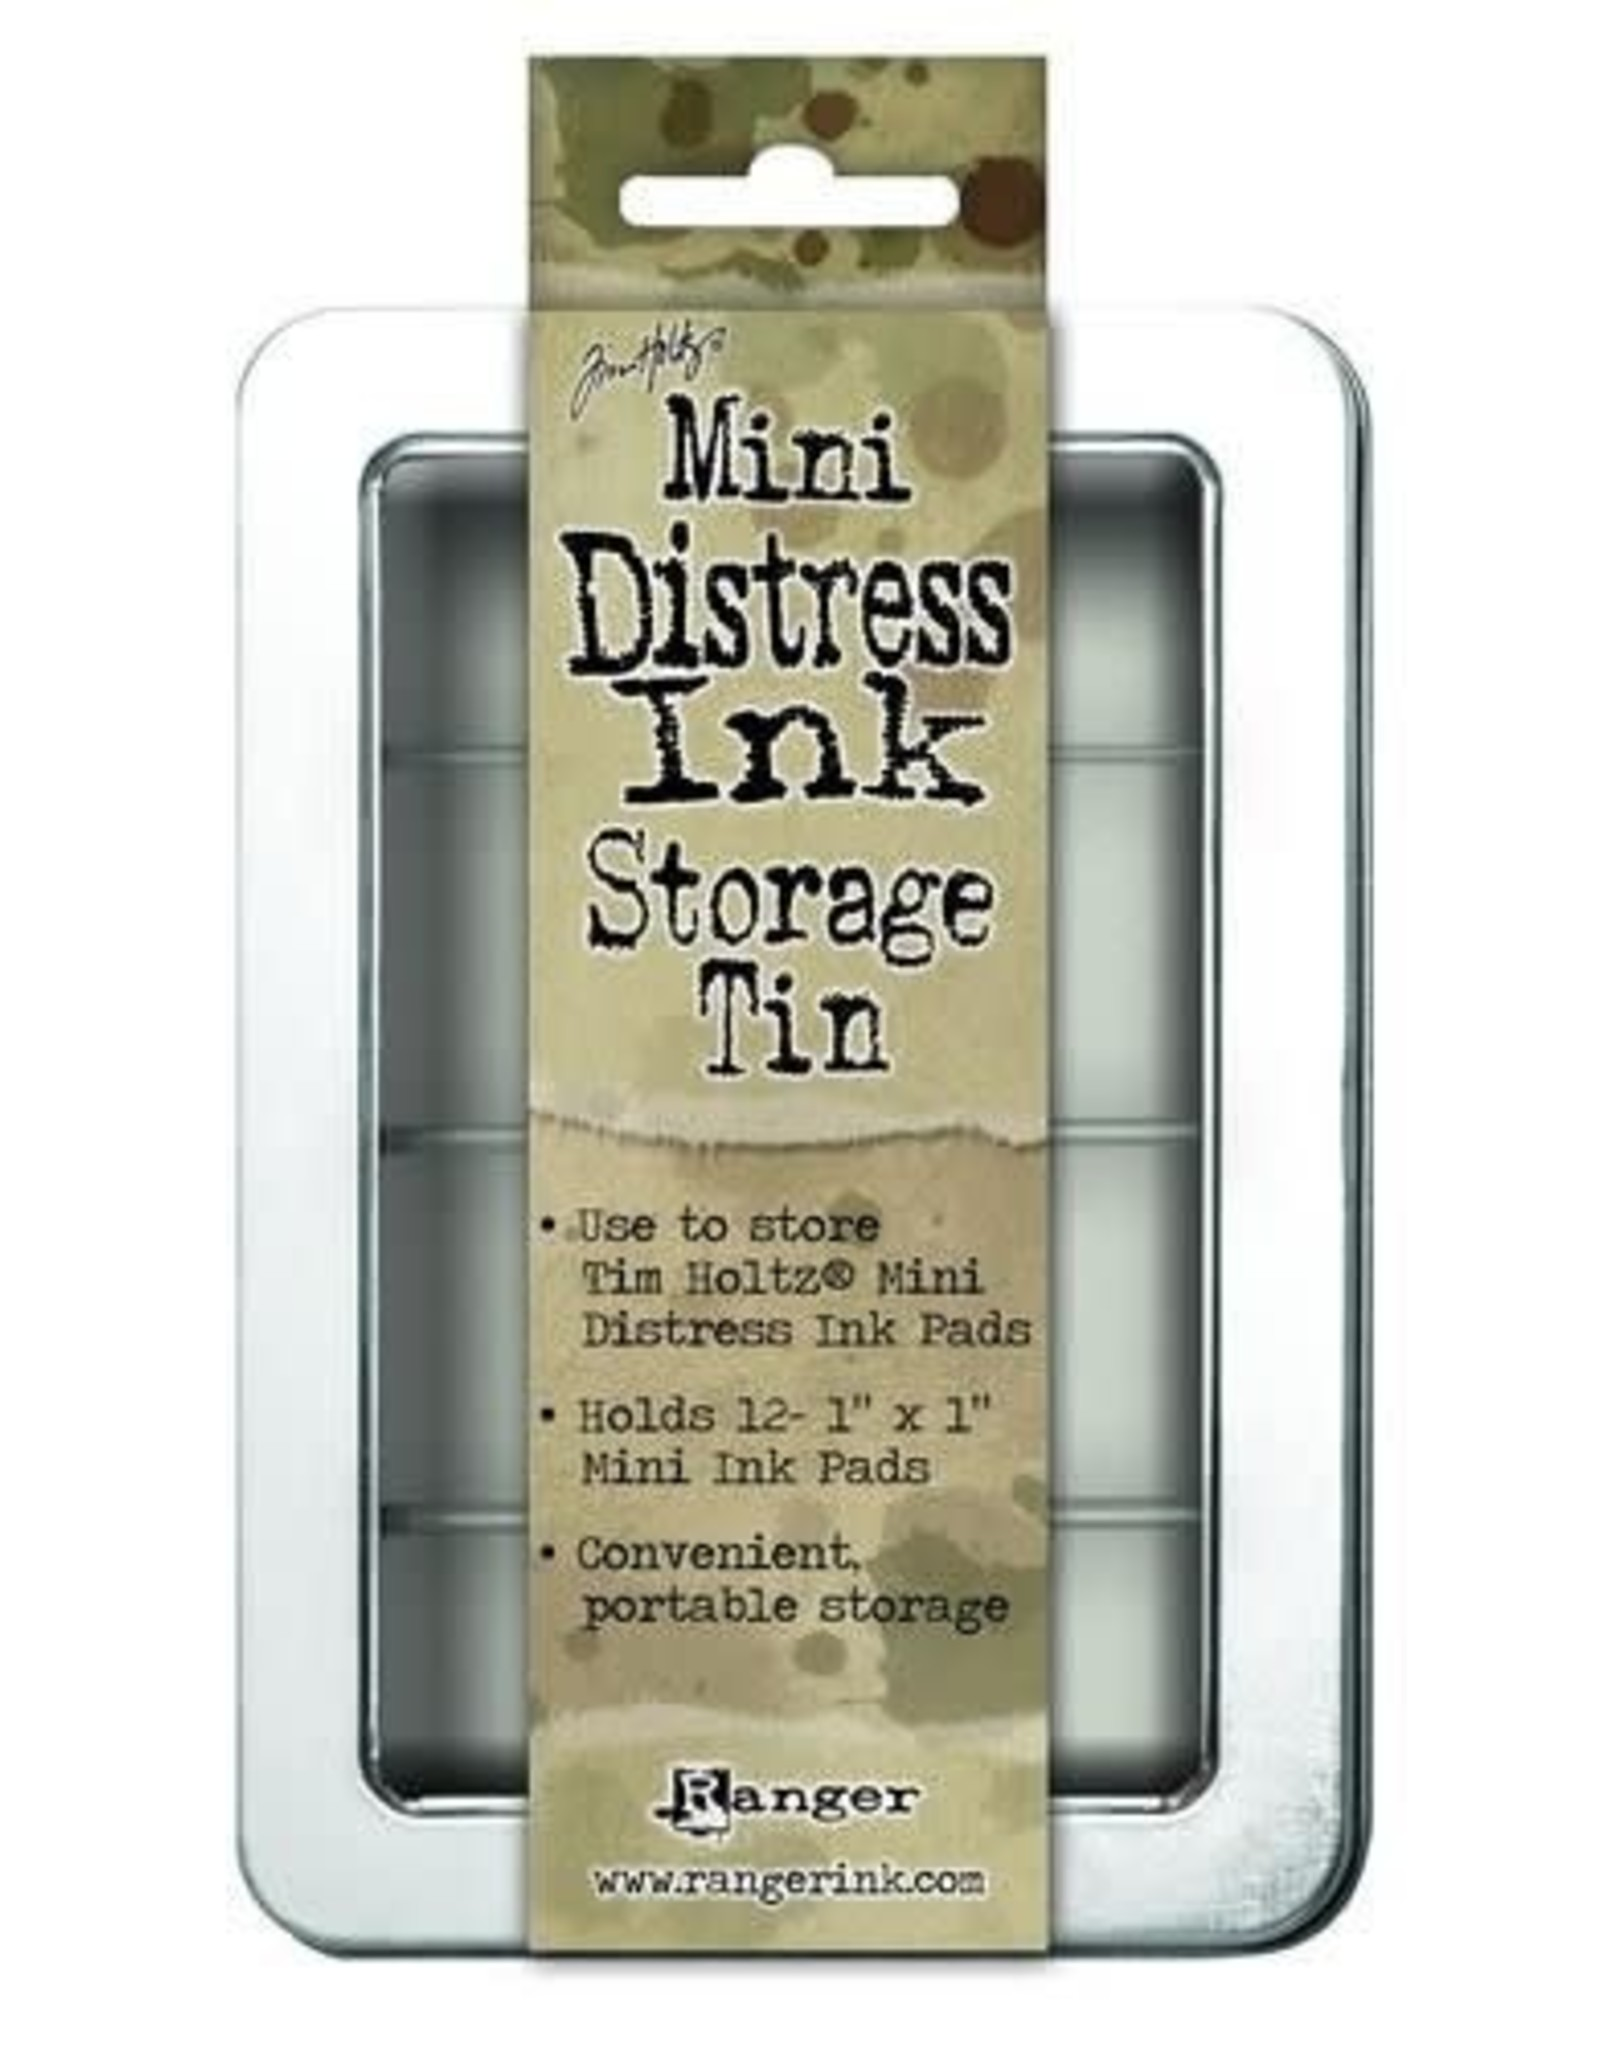 Ranger Ranger Mini Distress Ink storage tin TDA42013 Tim Holtz